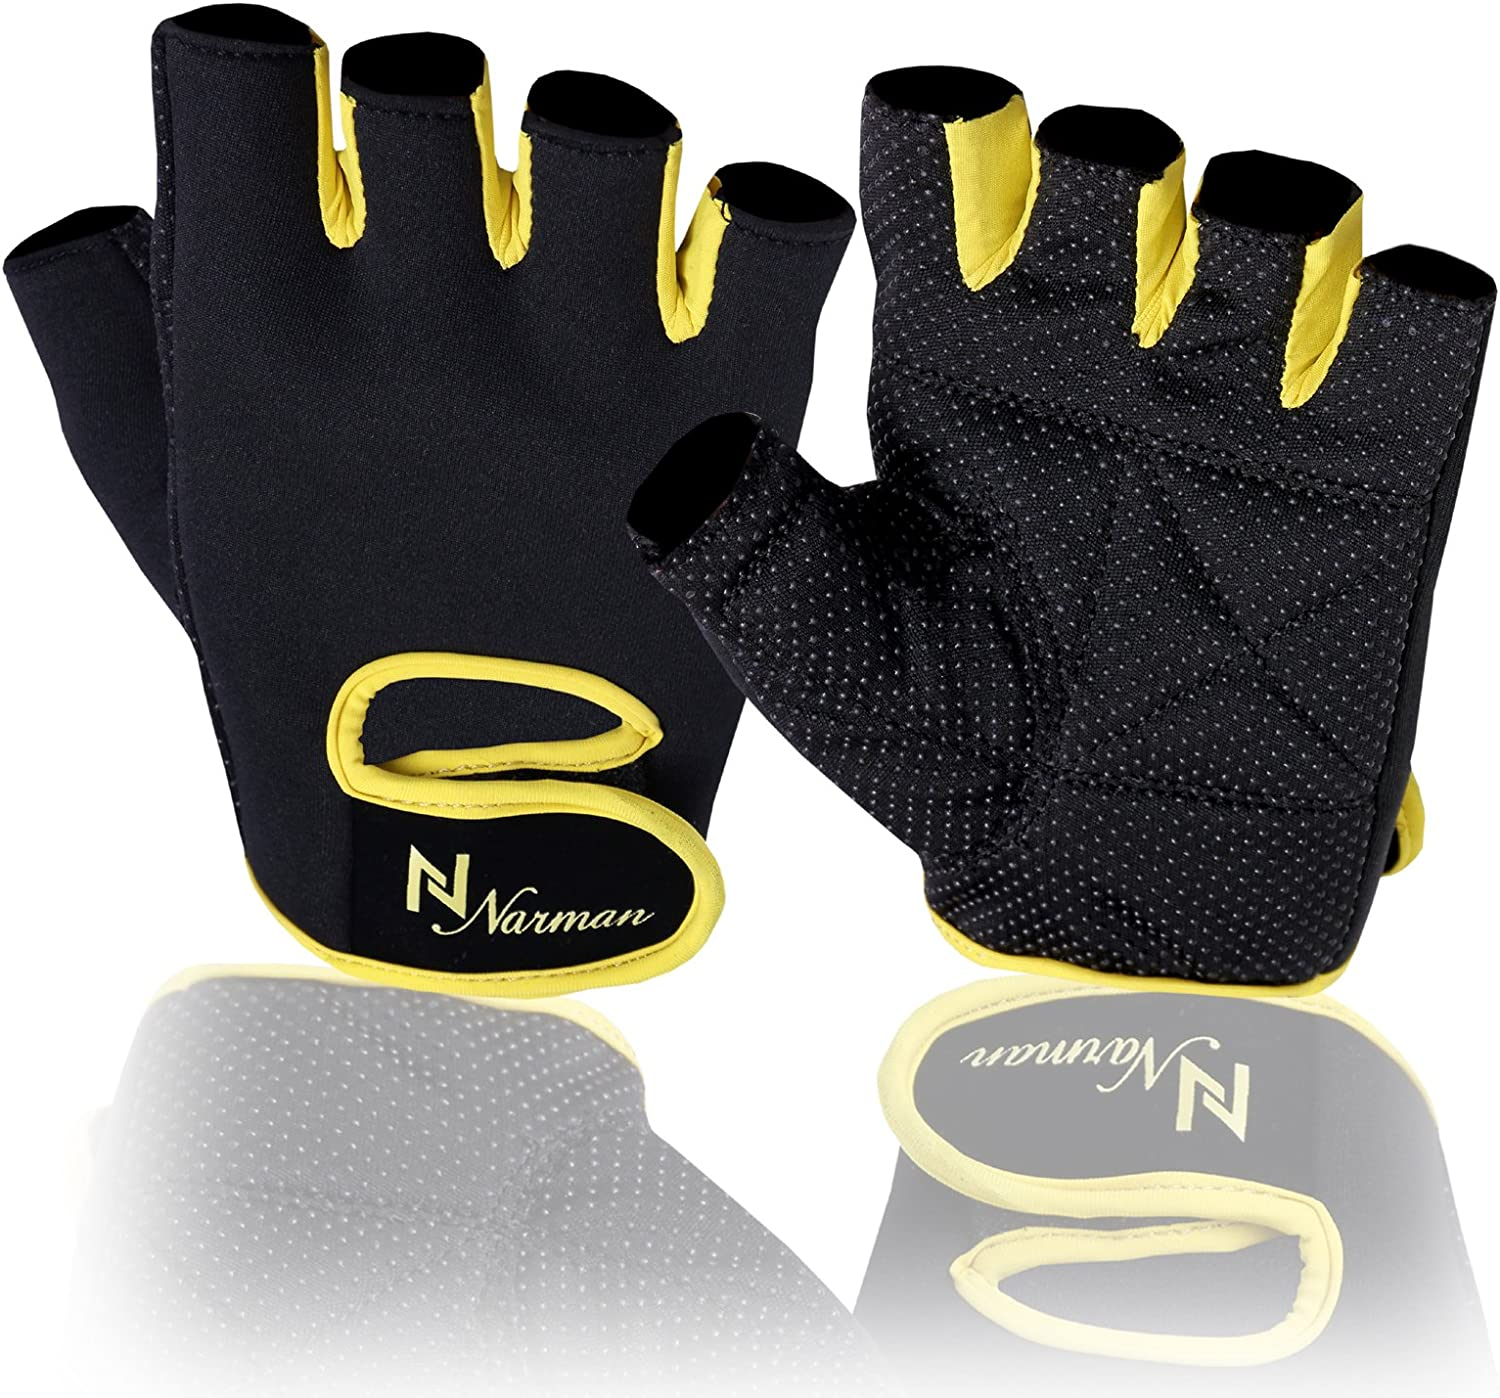 Weightlifting Gloves Fitness Glove Gym Training Long Wrist Straps Yellow Black